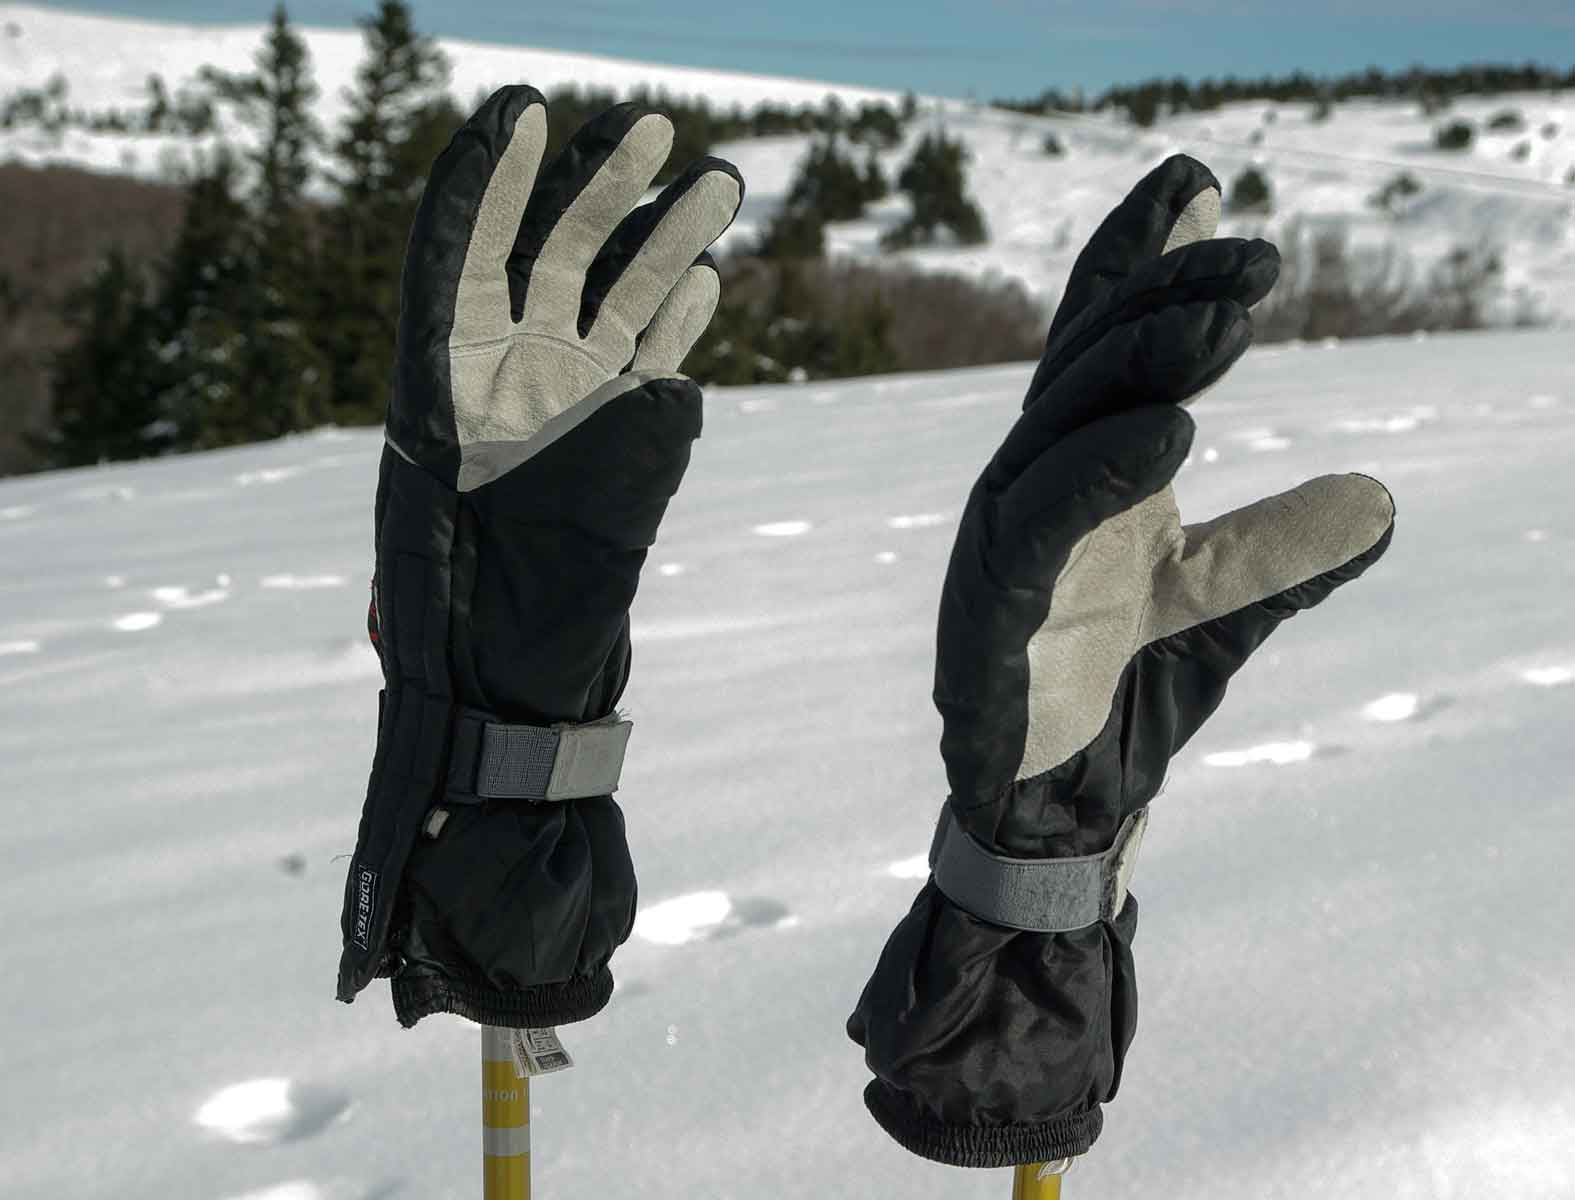 A pair of waterproof gloves